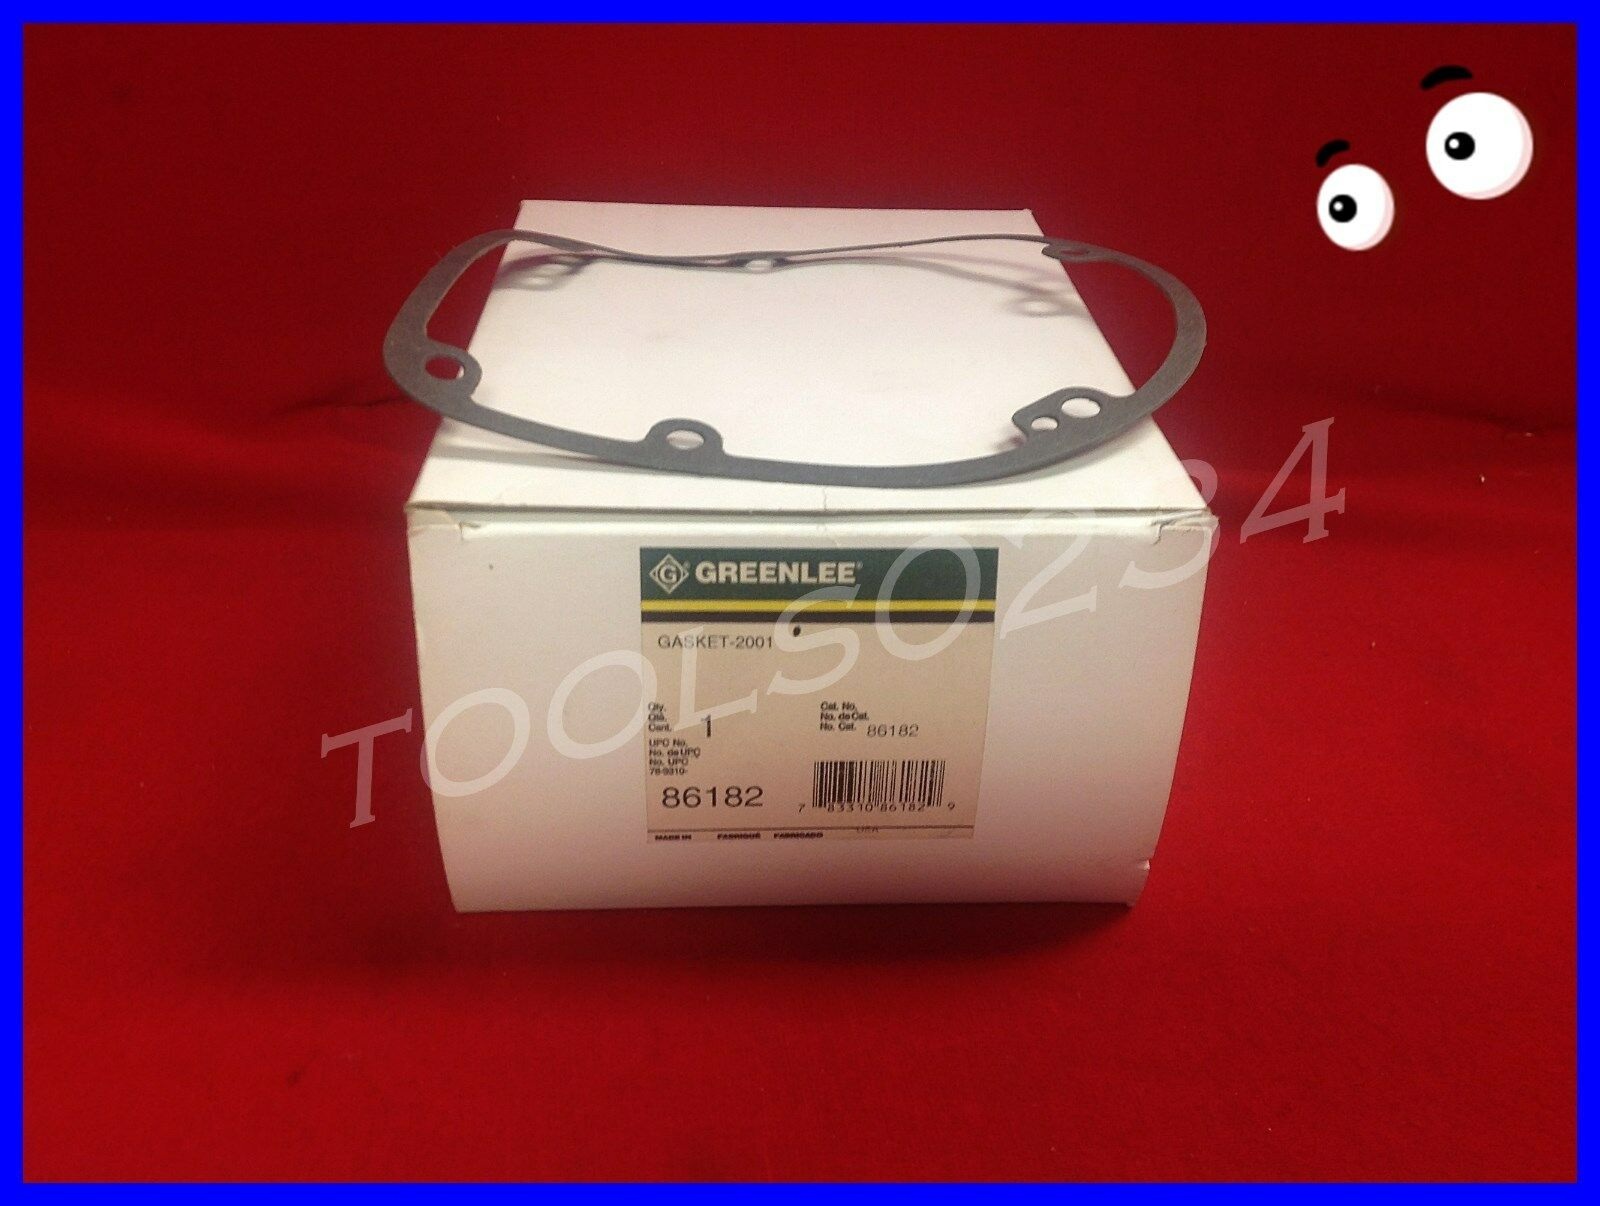 Greenlee 86182 Gasket 2001 for 6001 Tugger Cable Puller USA Made ...